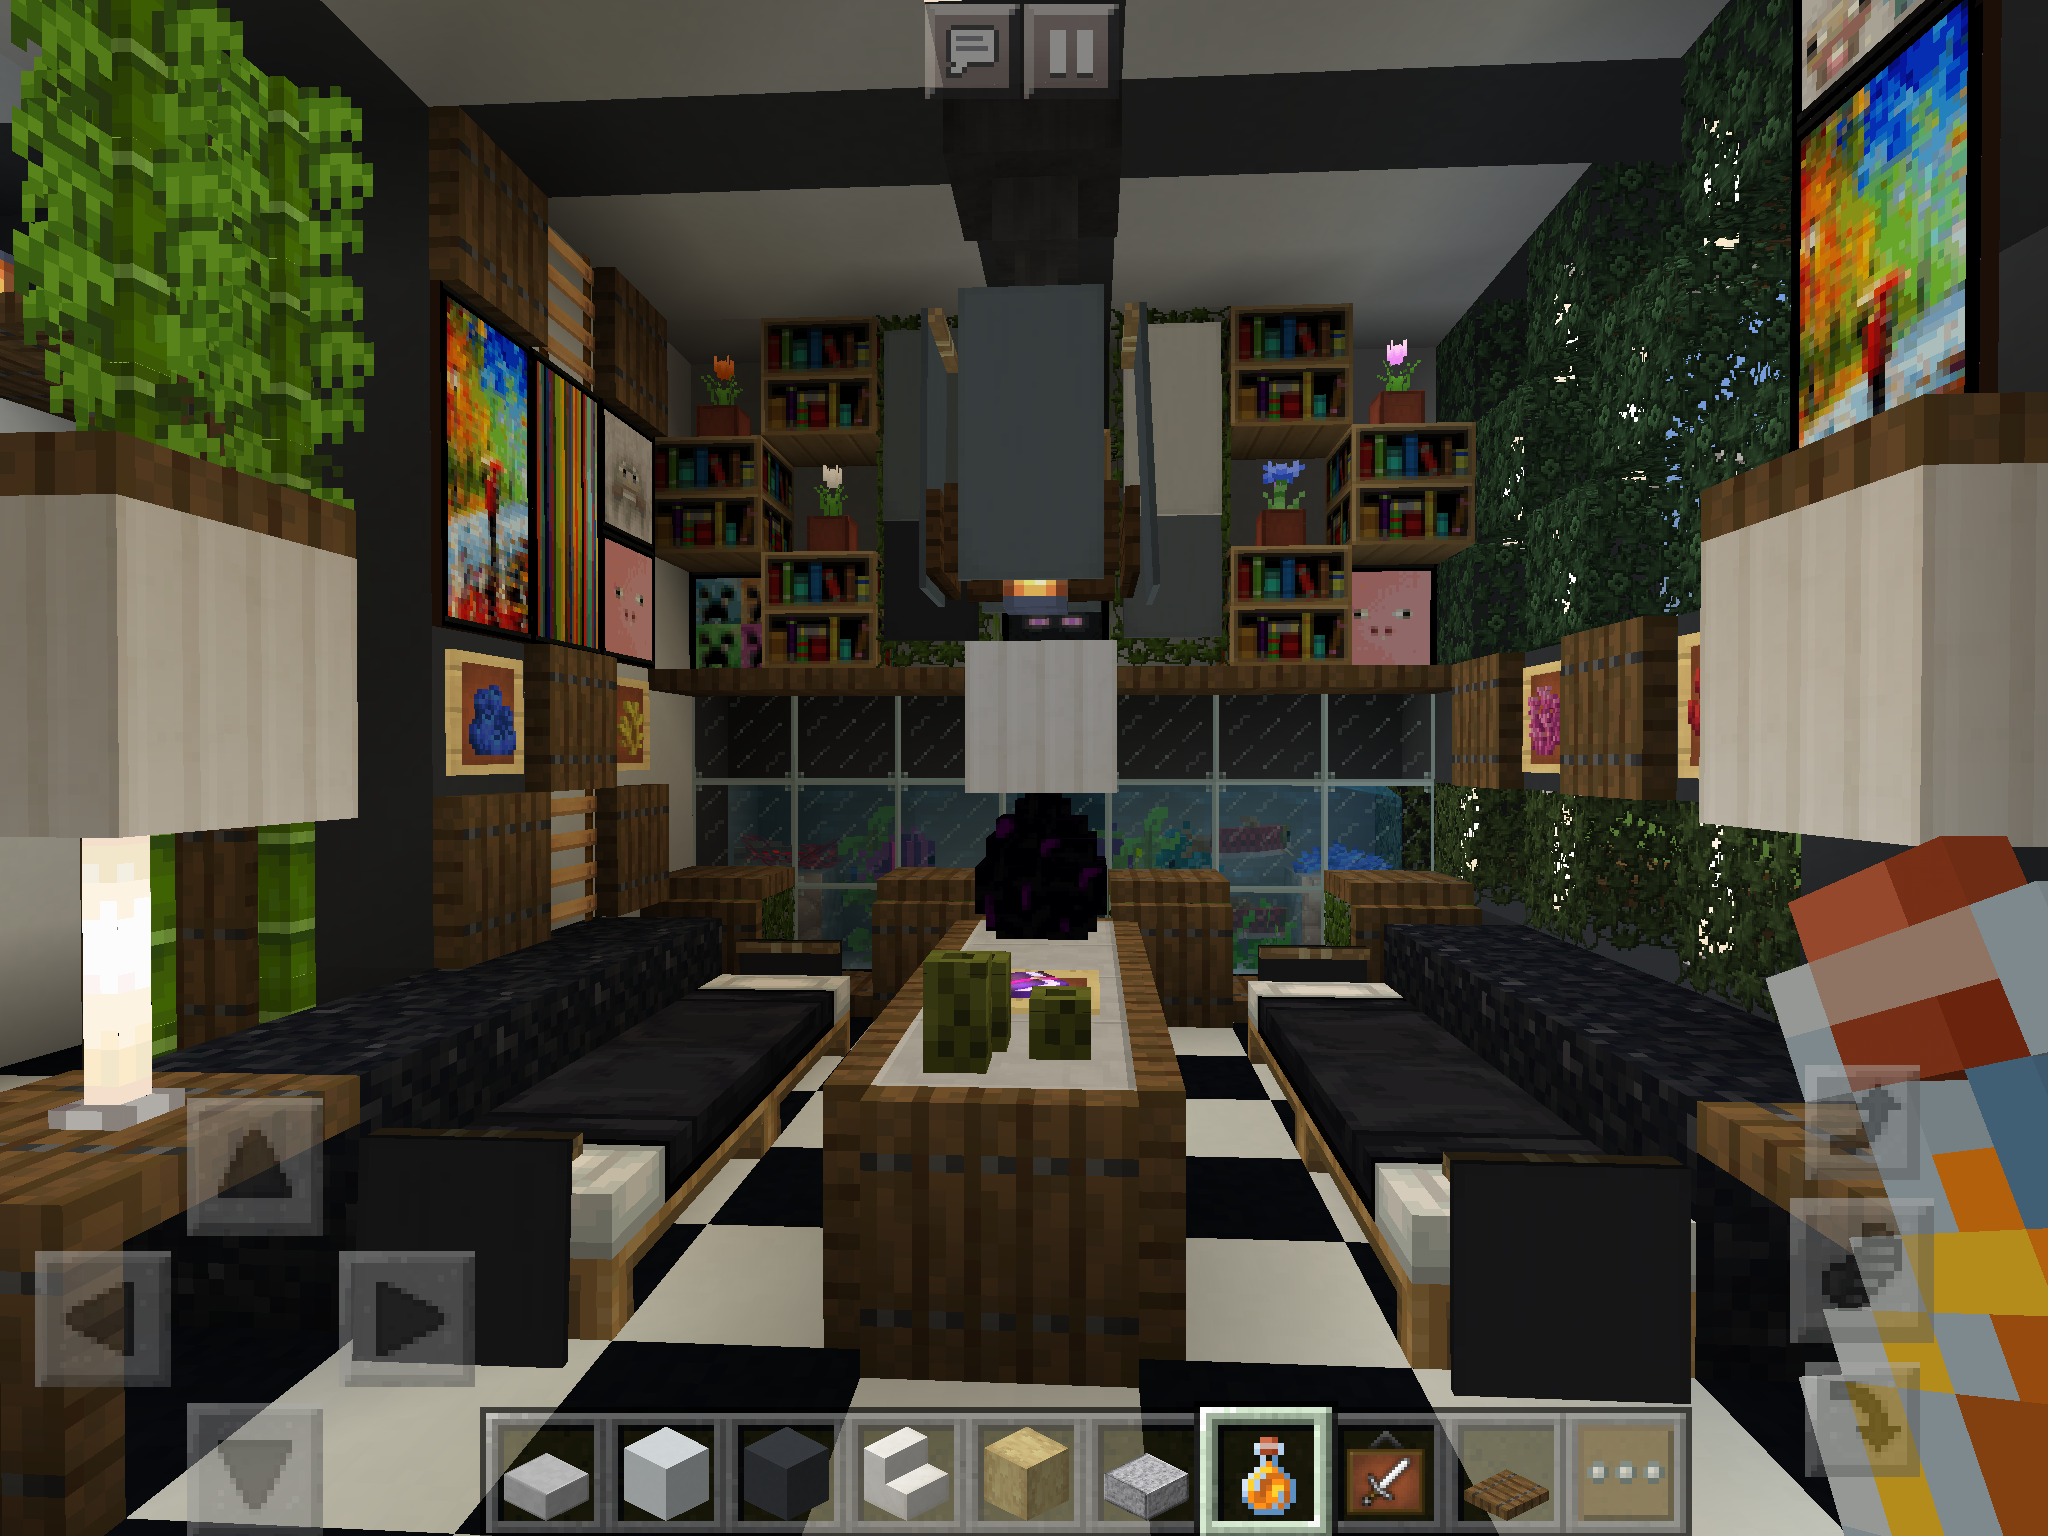 Interior Design For A Modern House In Minecraft In 2020 Minecraft Interior Design Minecraft Modern Modern House